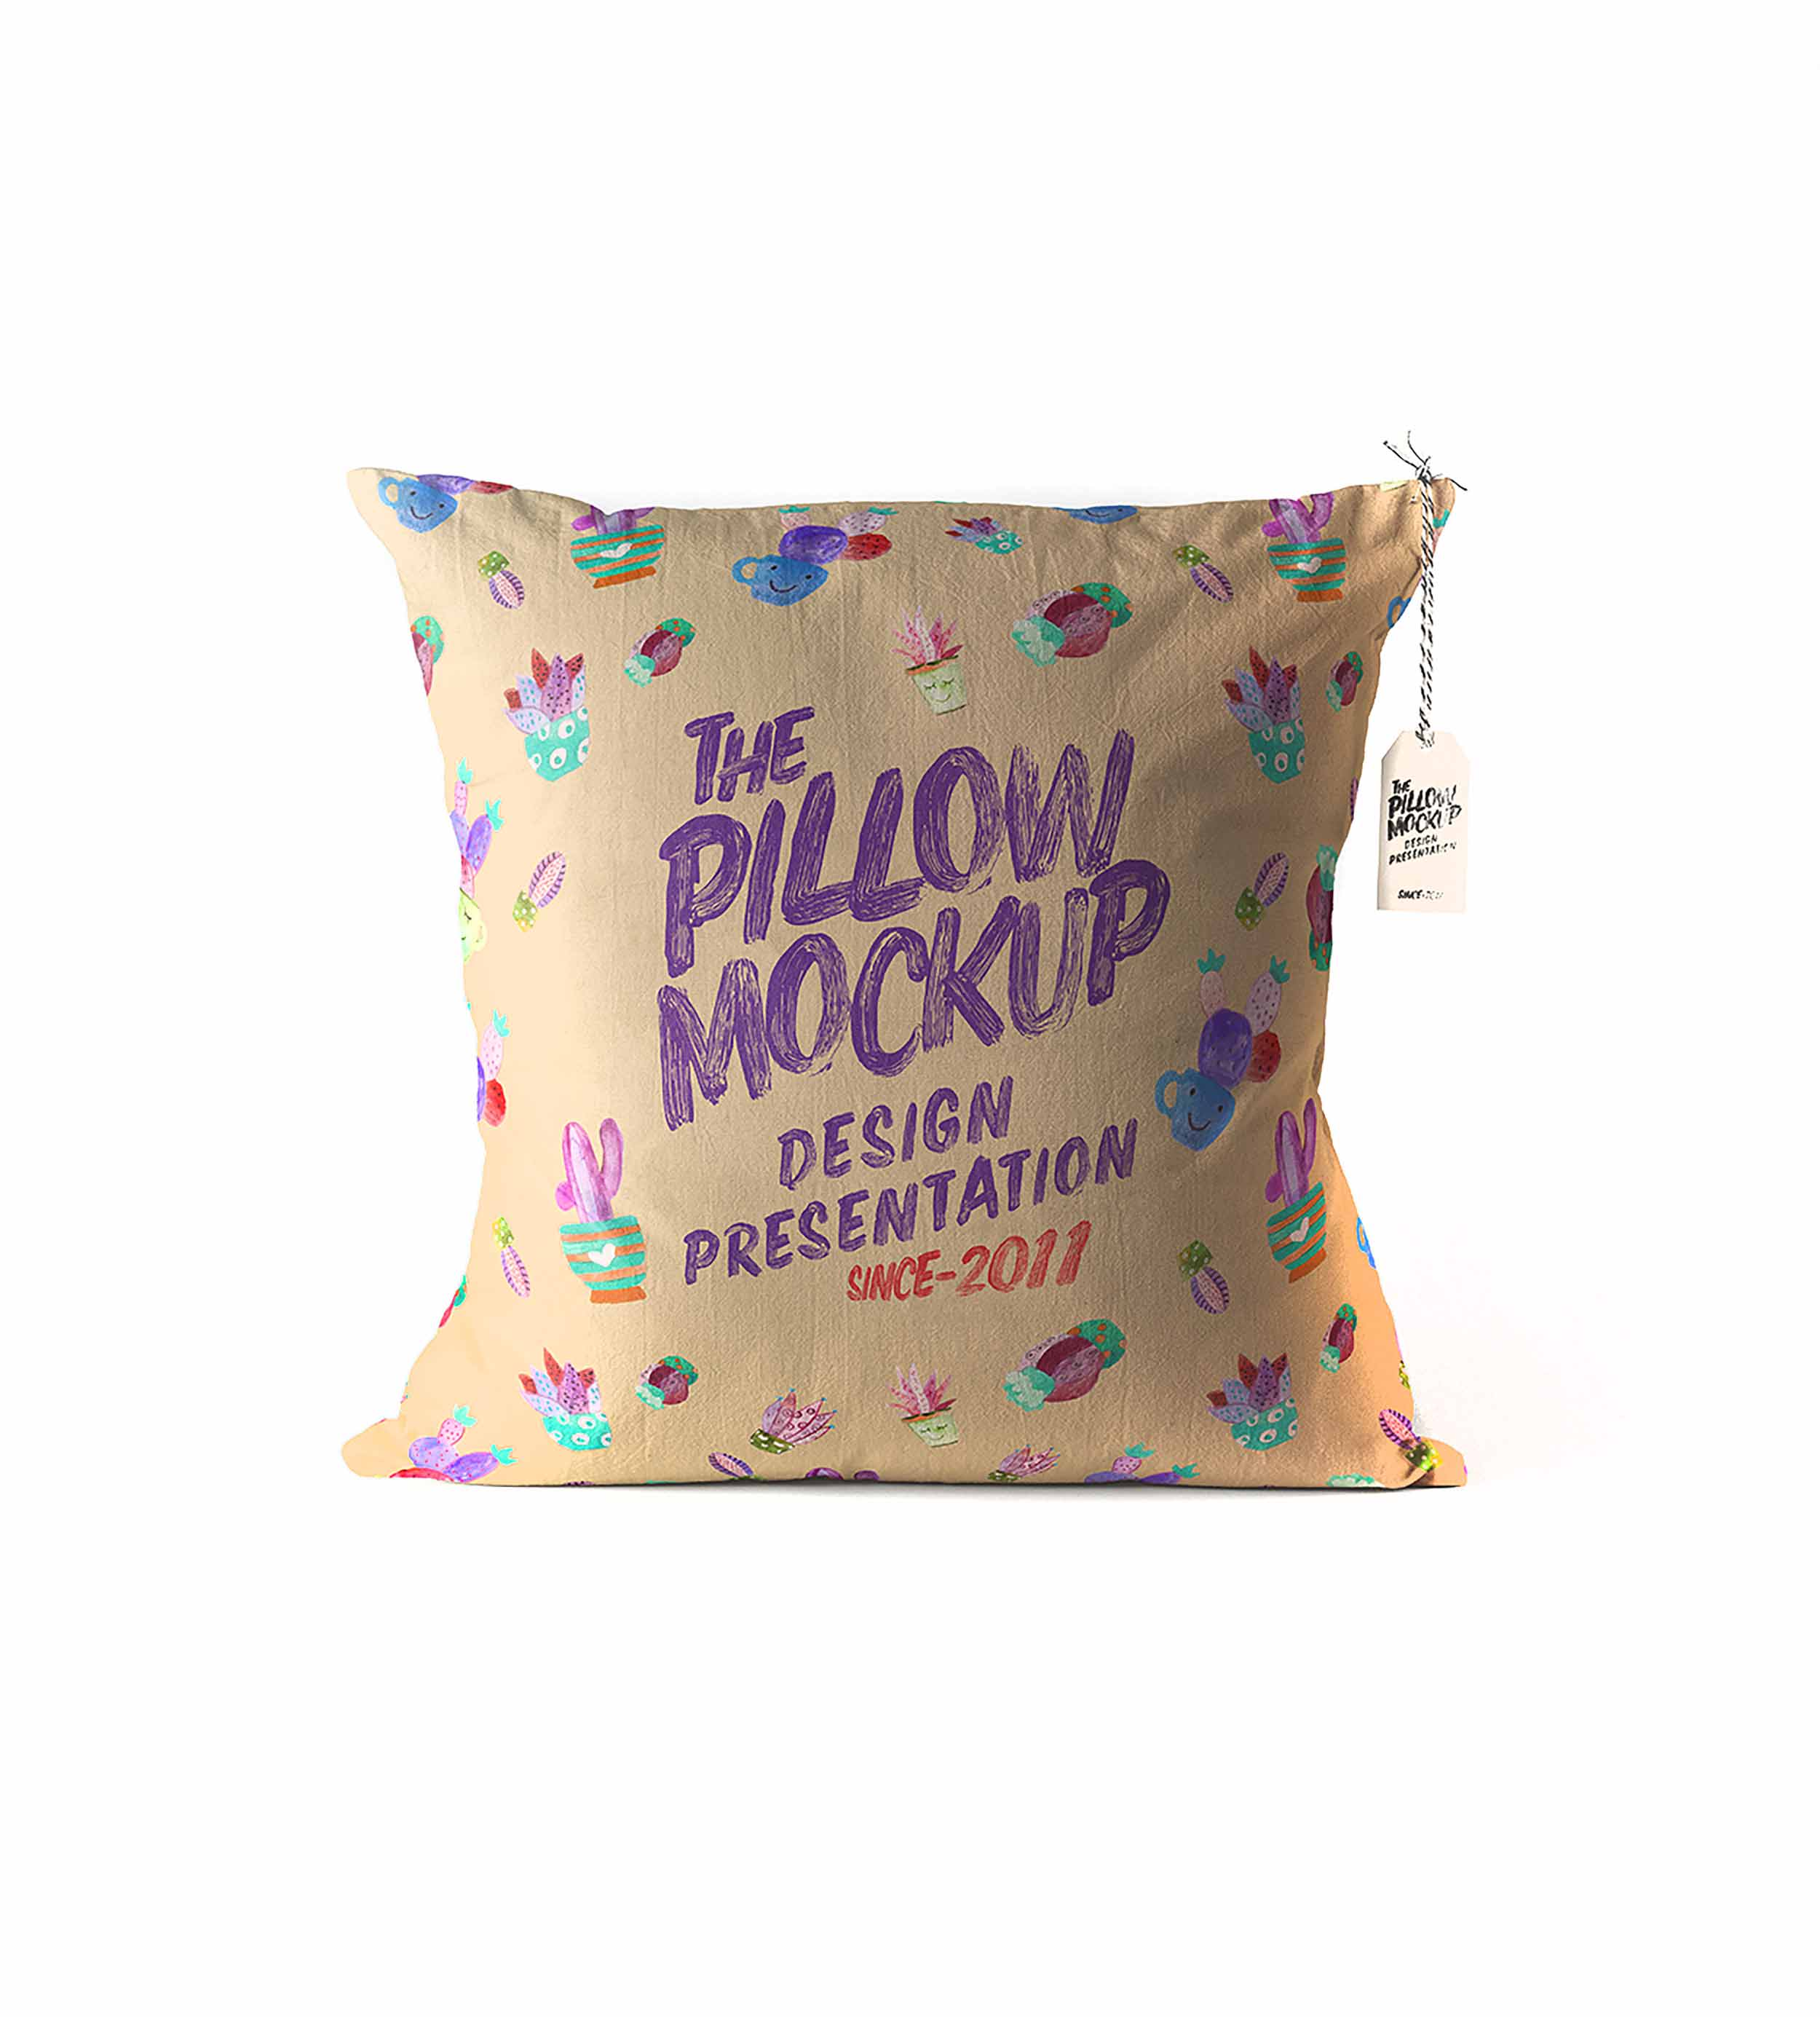 the pillow pattern